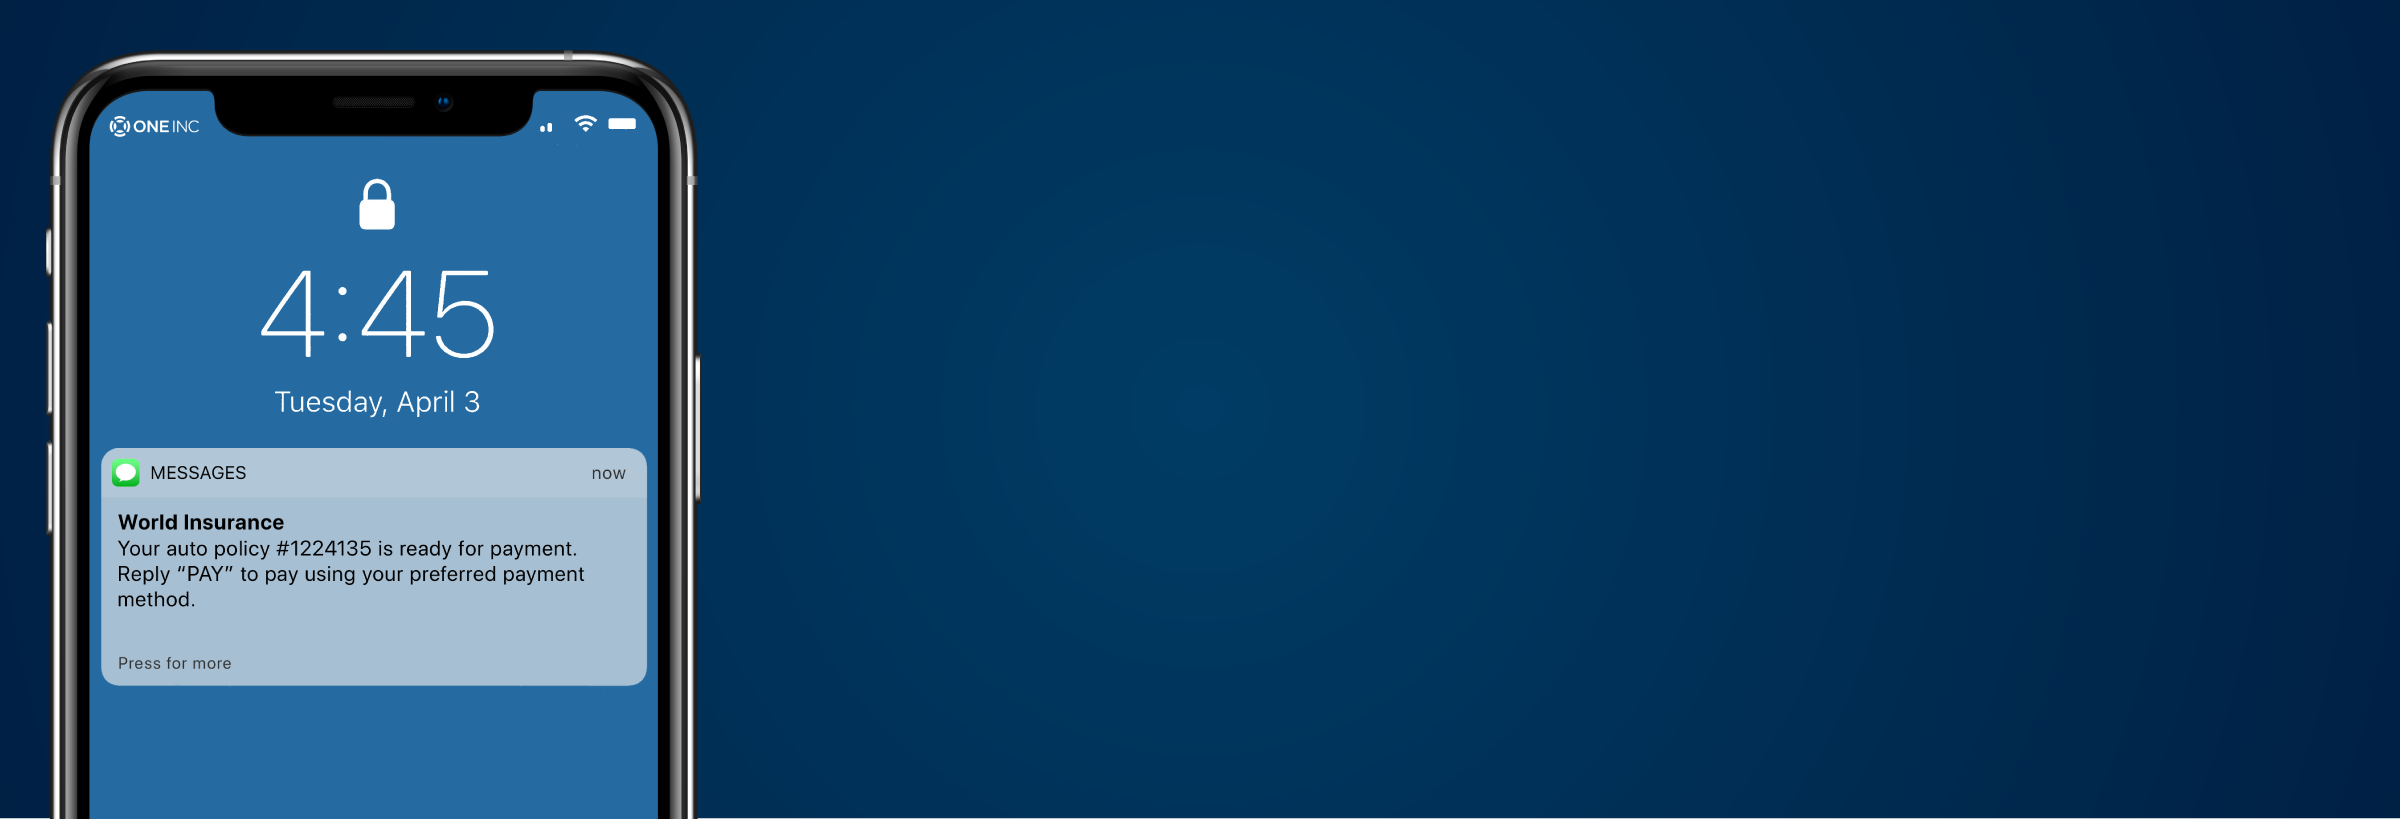 pay-by-text-LP-banner-2400x819-bluebackground